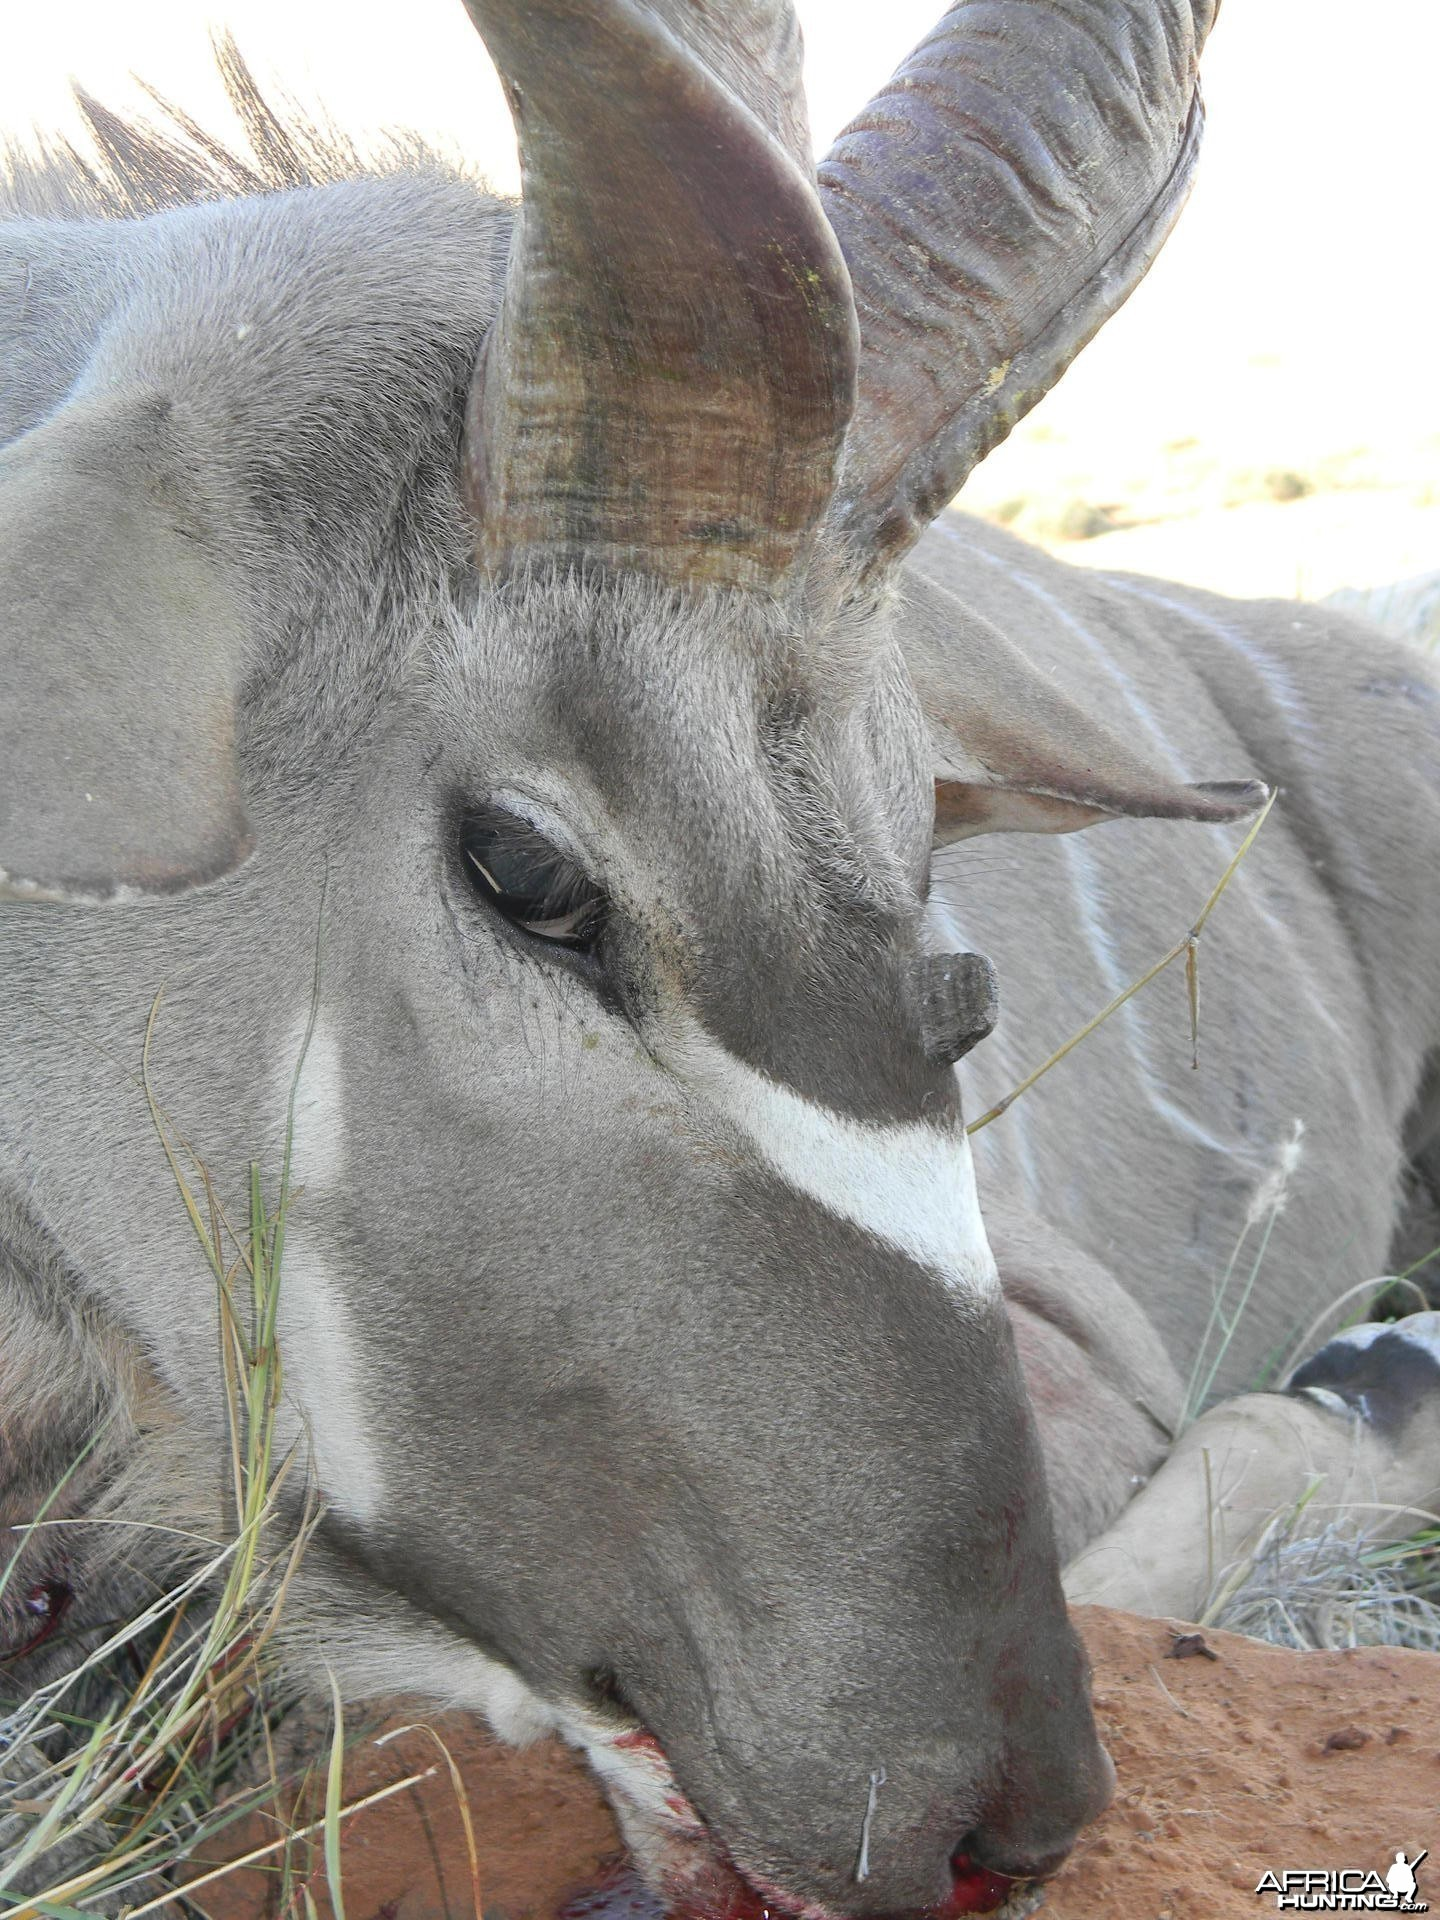 Three horned Greater Kudu hunted in South Africa